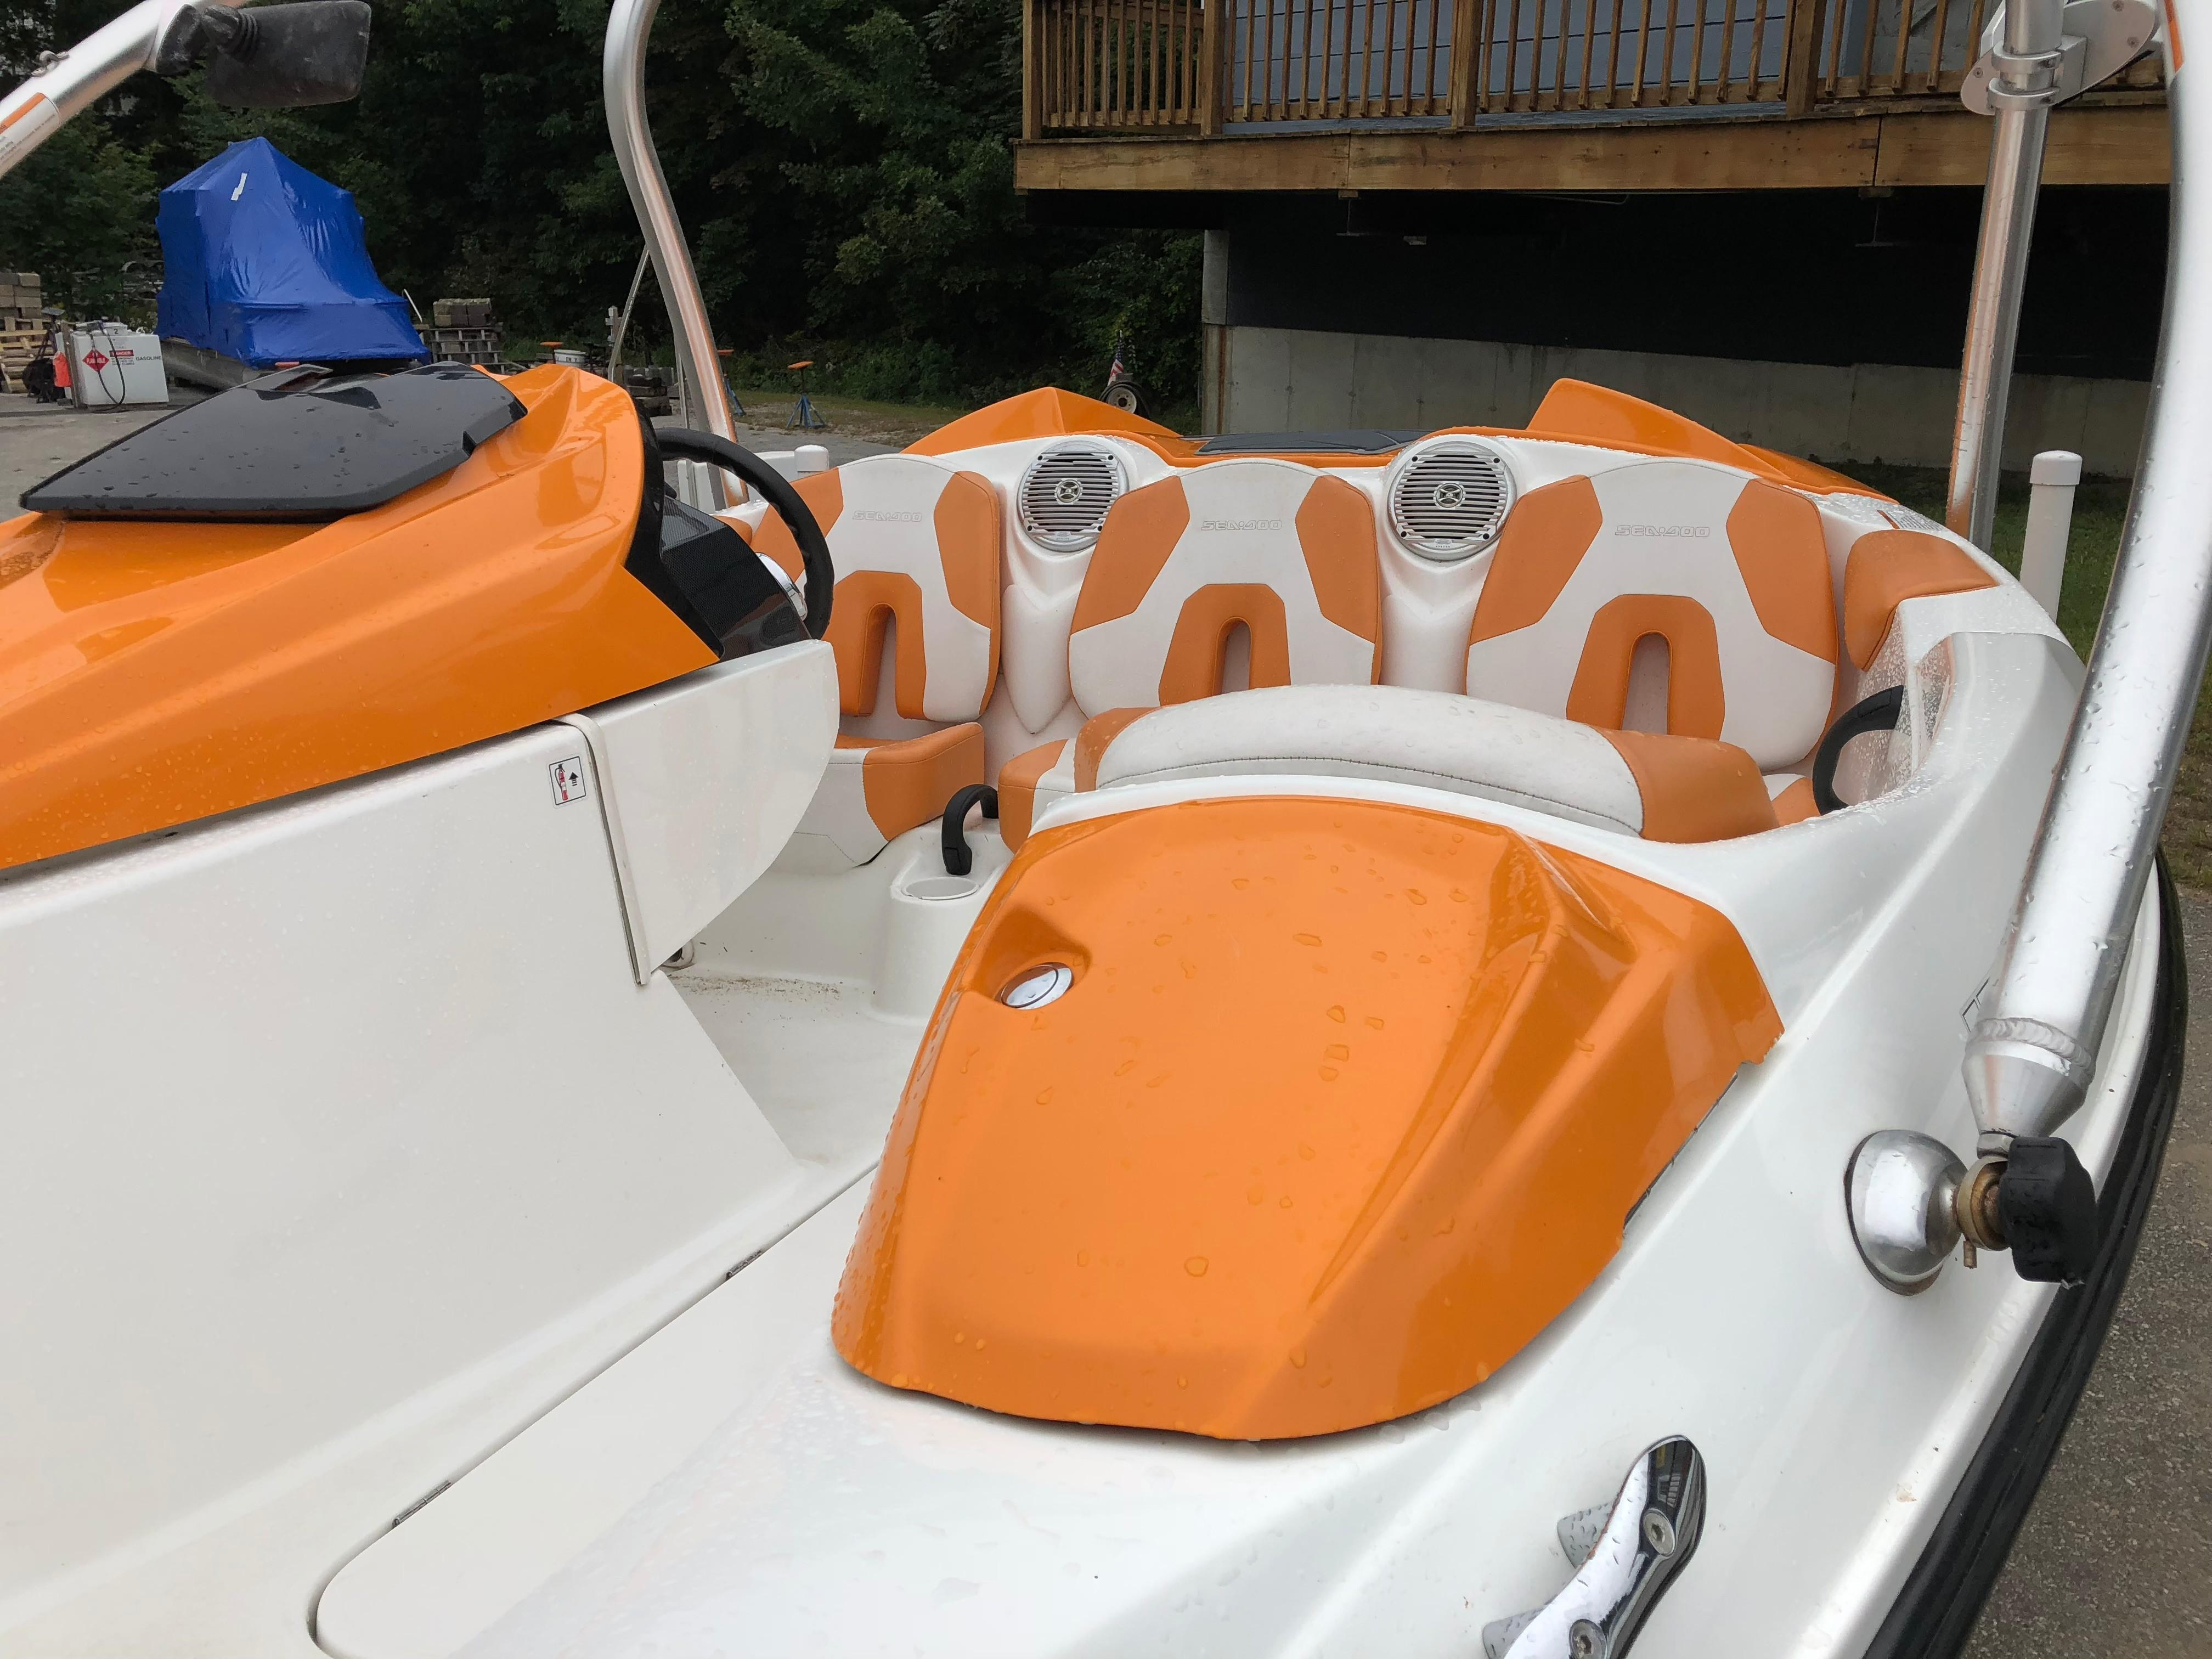 2012 Sea Doo Sportboat boat for sale, model of the boat is Speedster 150 & Image # 4 of 11